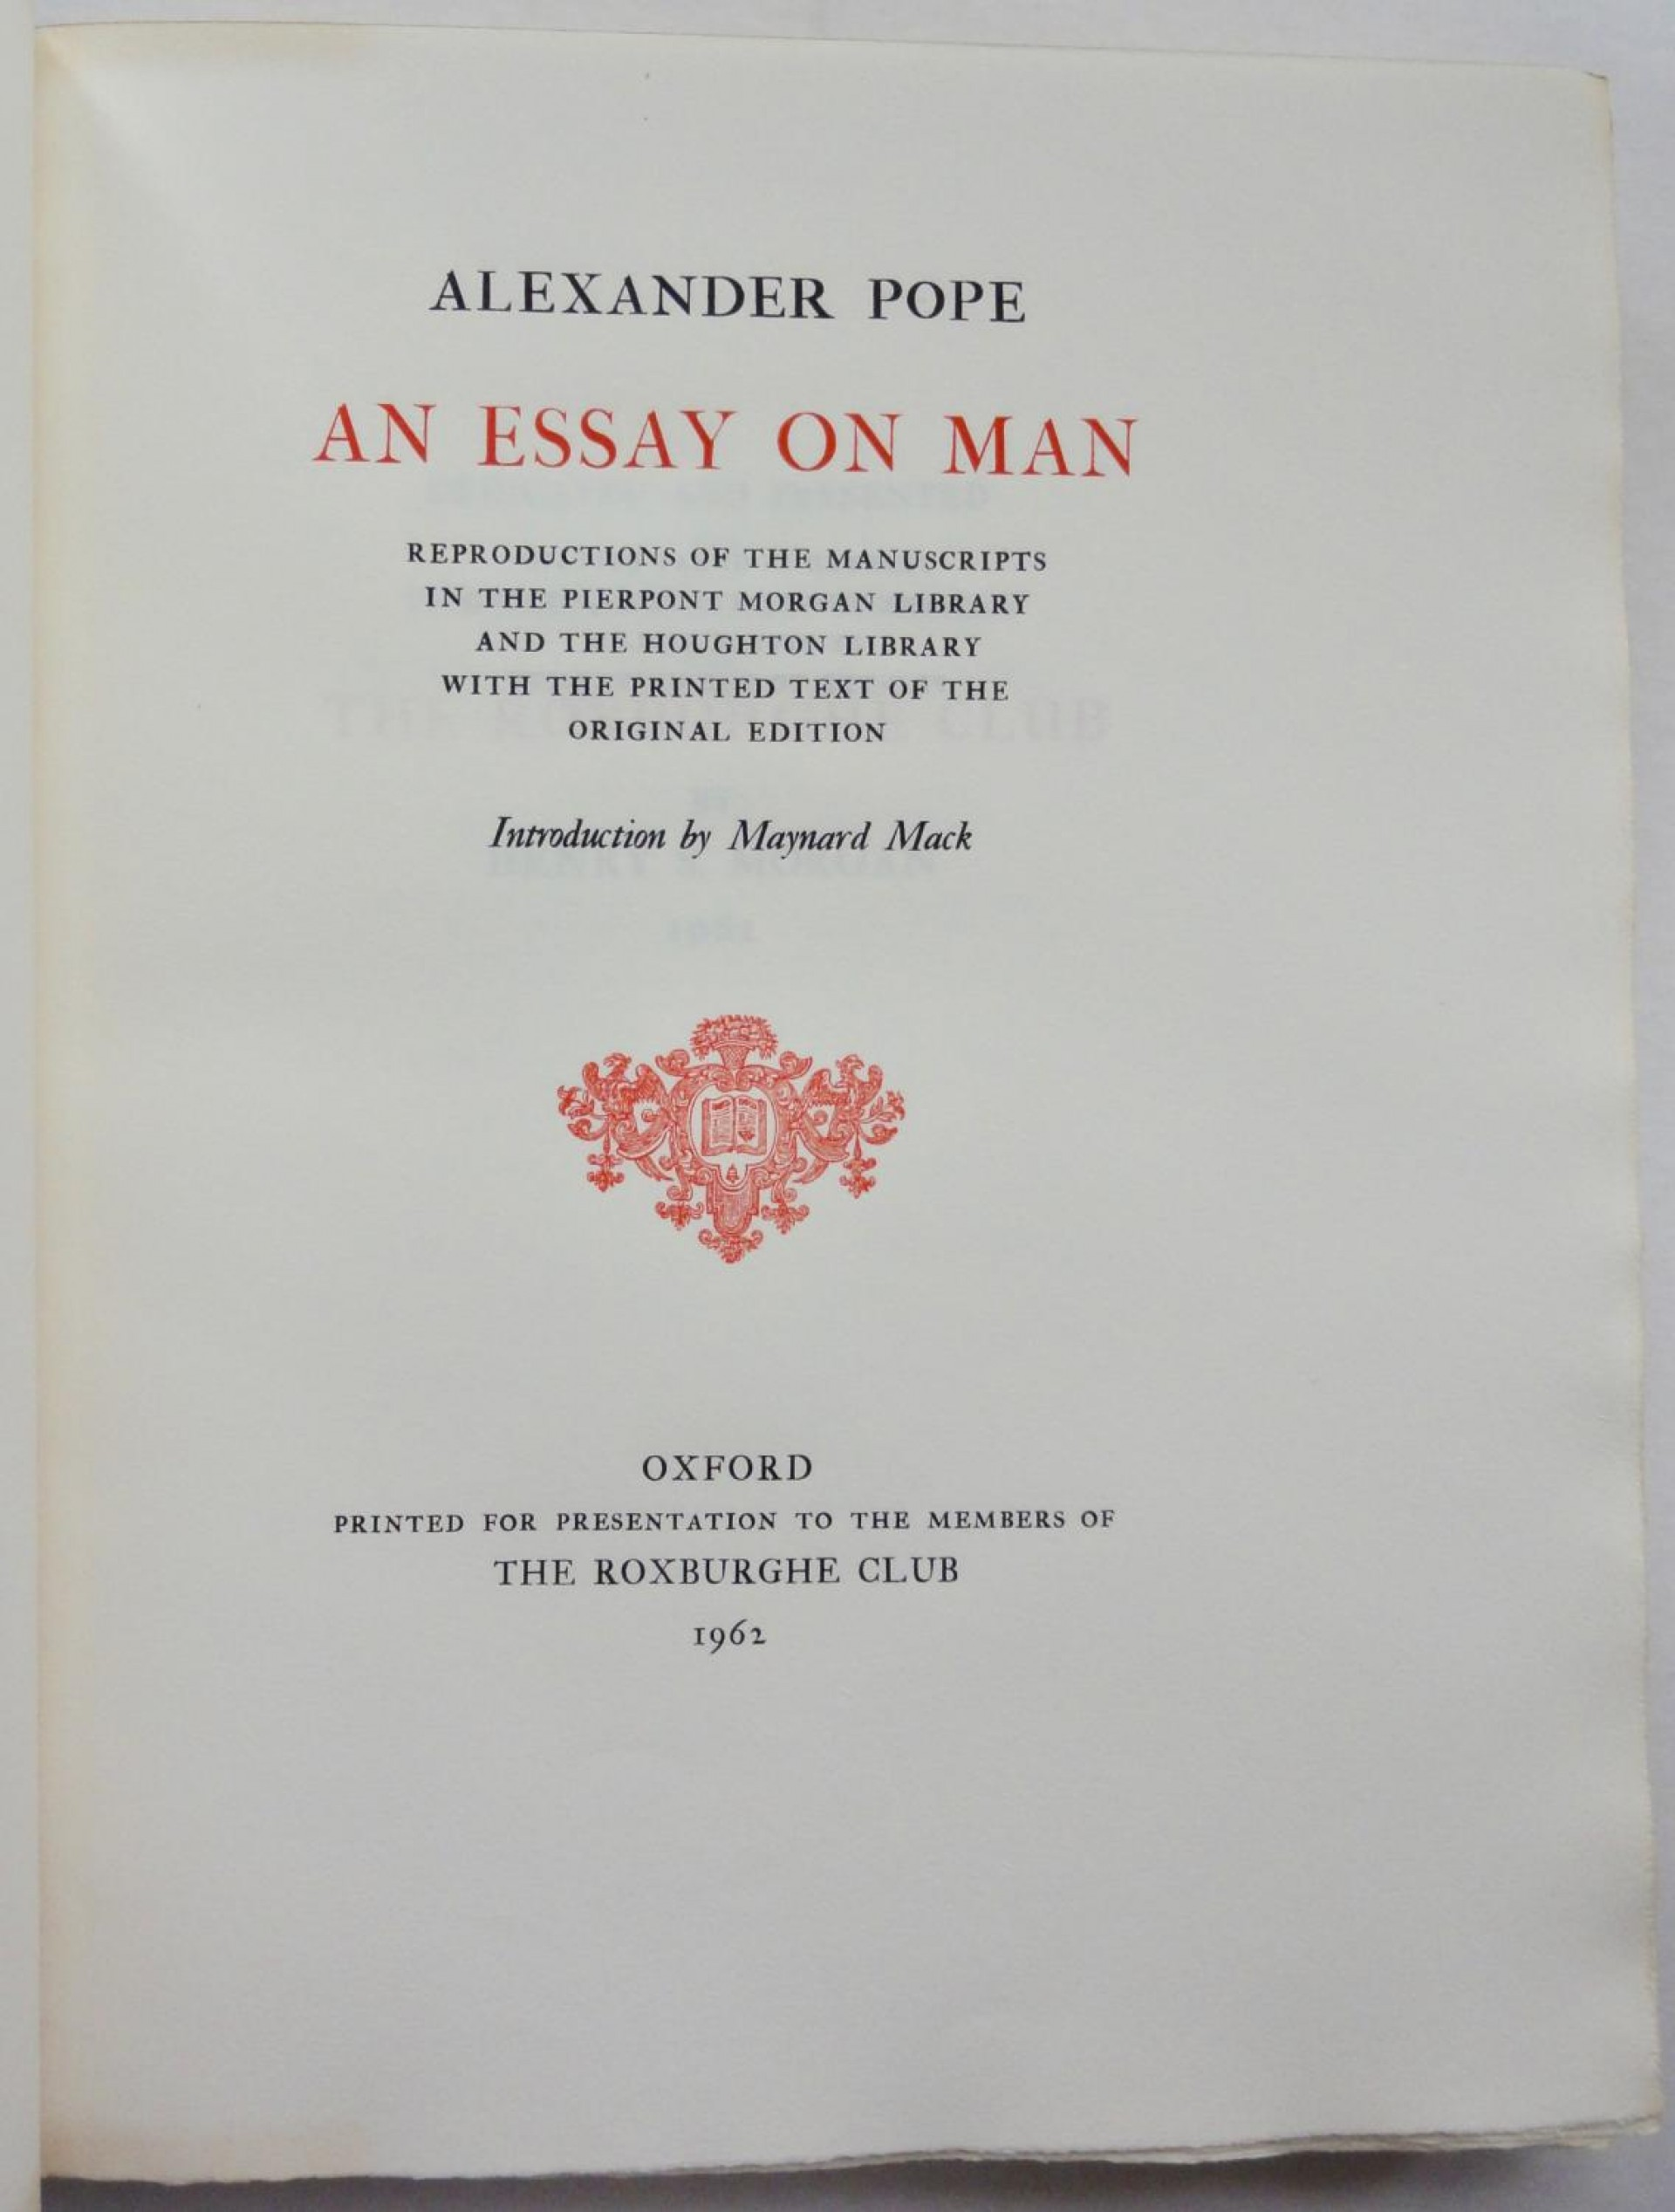 011 An Essay On Man Fantastic Epistle 2 Meaning Summary Sparknotes Part 1 1920